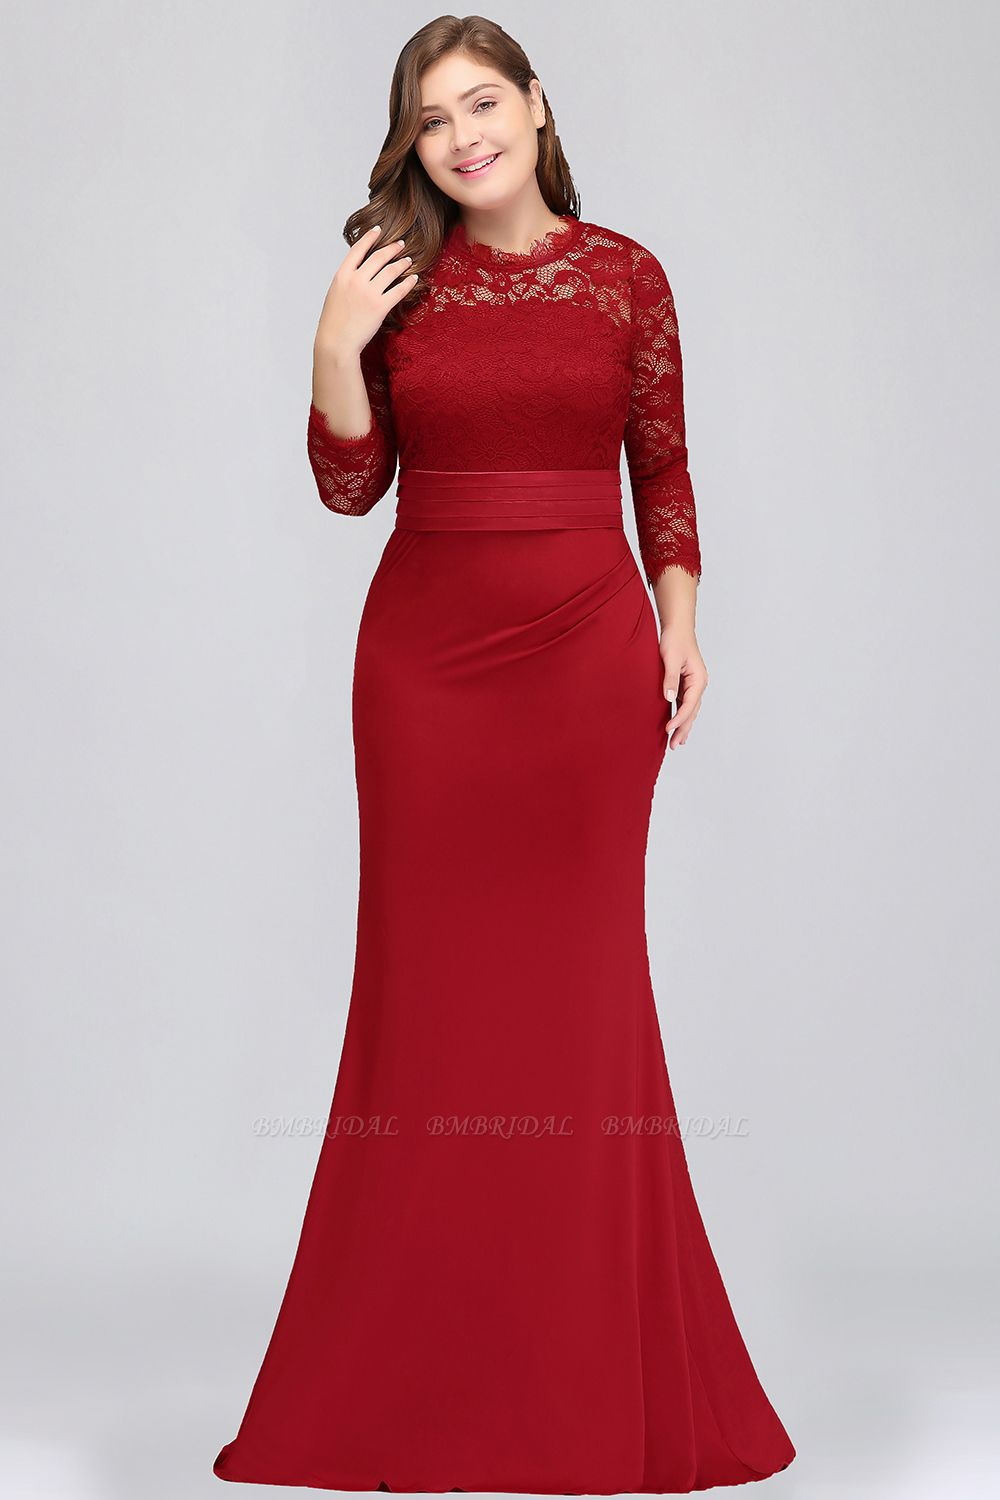 Plus Size Mermaid Long Red Lace Bridesmaid Dresses with 3/4 Sleeves